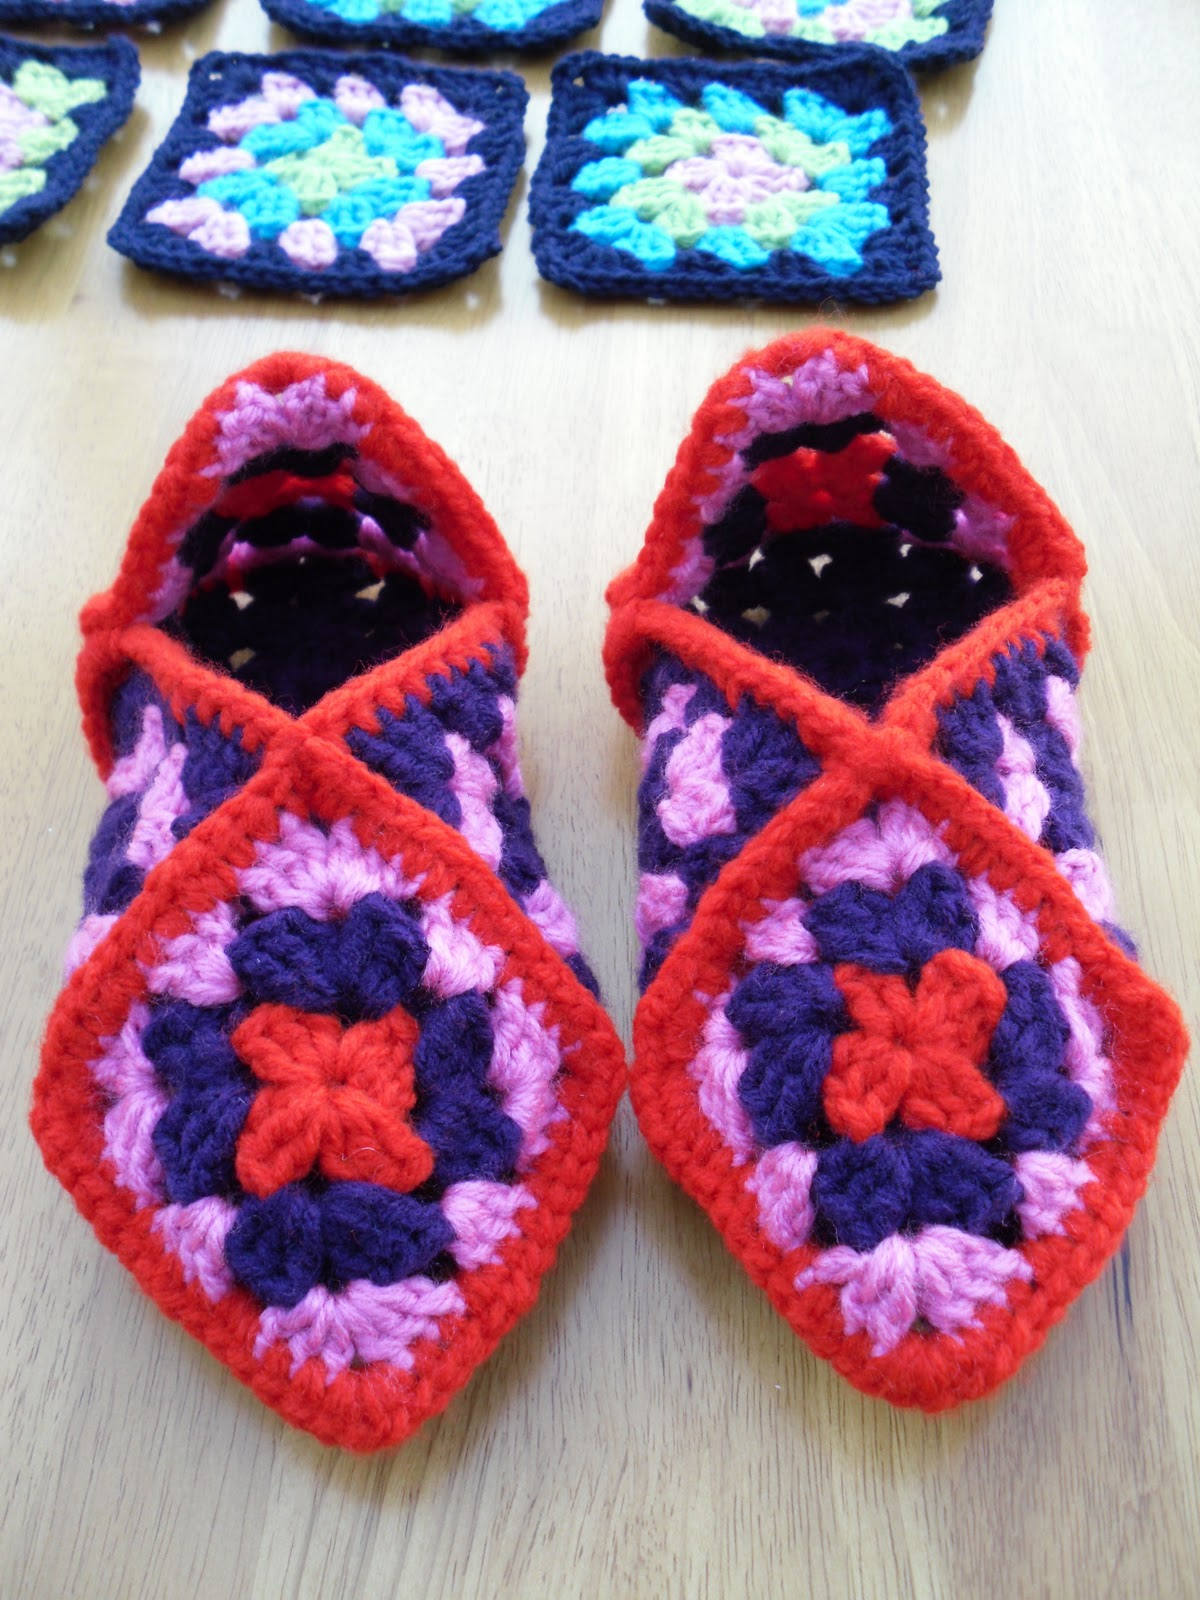 Crocheting Granny Squares For Beginners : GRANNY SQUARE CROCHET SLIPPERS Crochet For Beginners